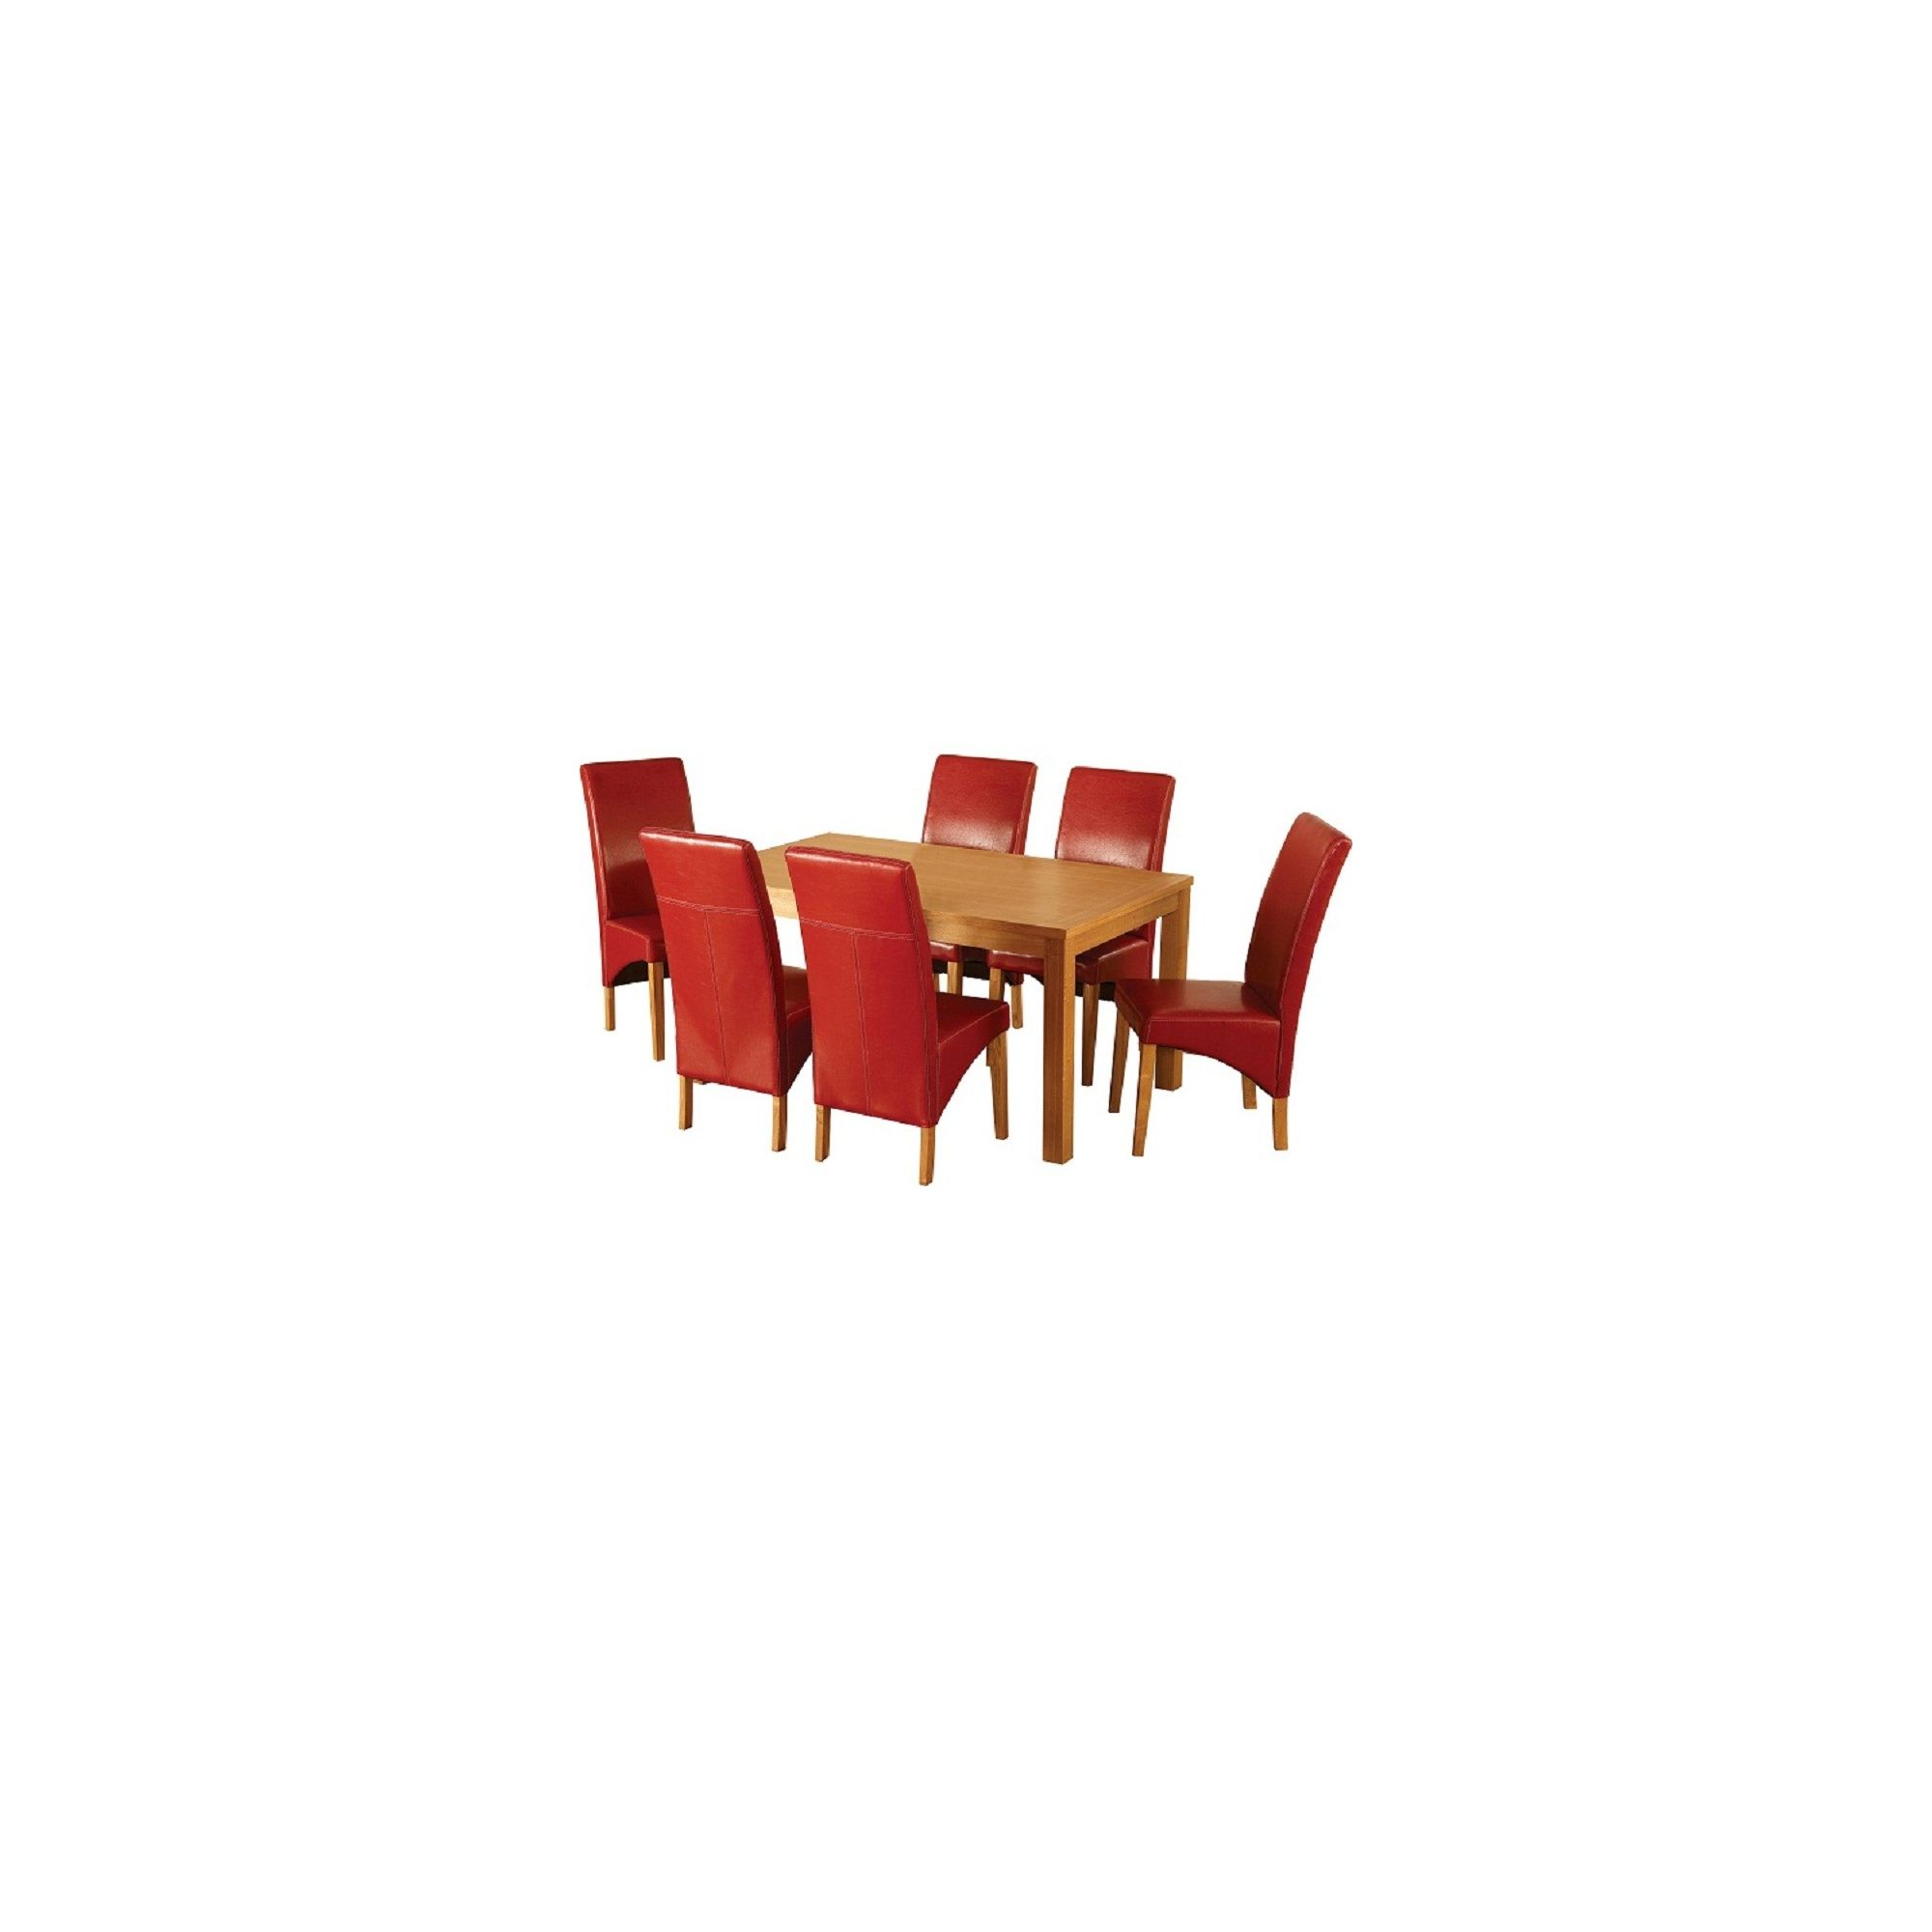 Home Essence Belgravia 7 Piece Dining Set - Rustic Red at Tesco Direct